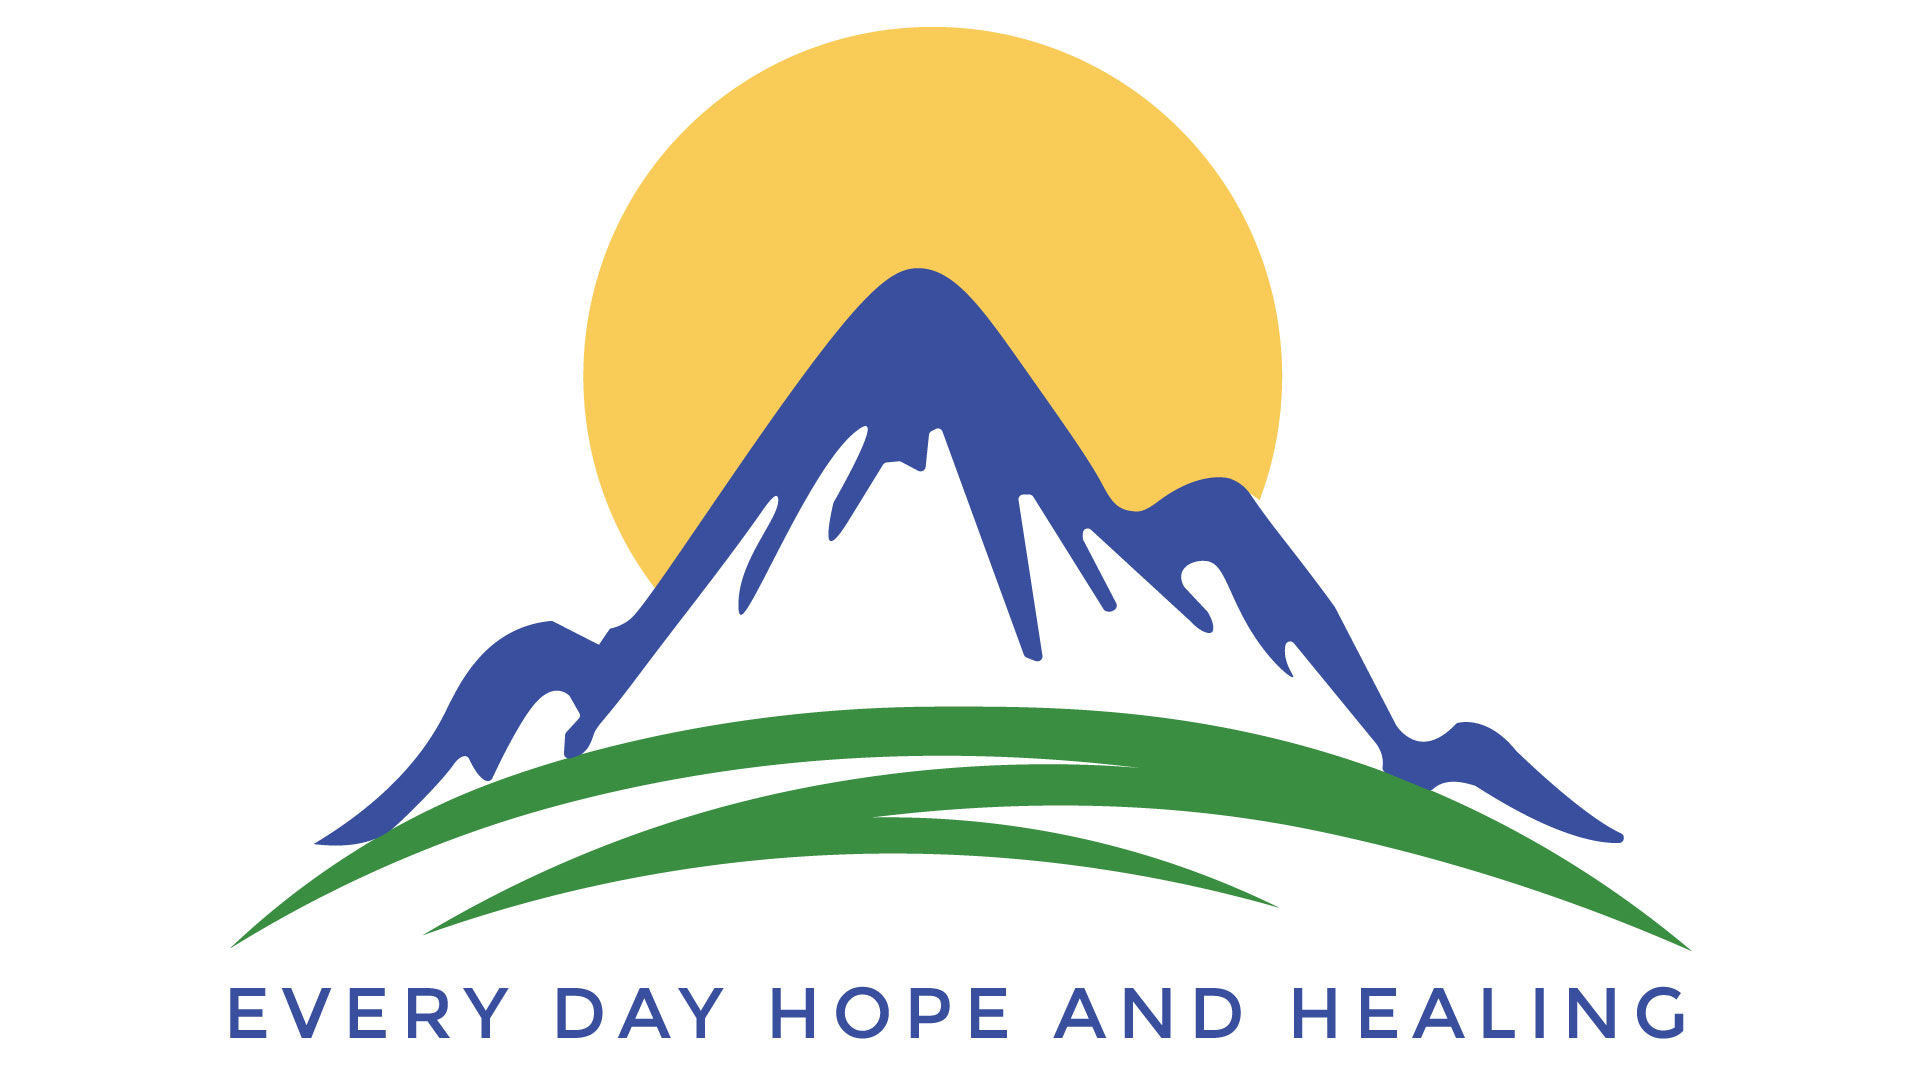 Every Day Hope and Healing, Inc.